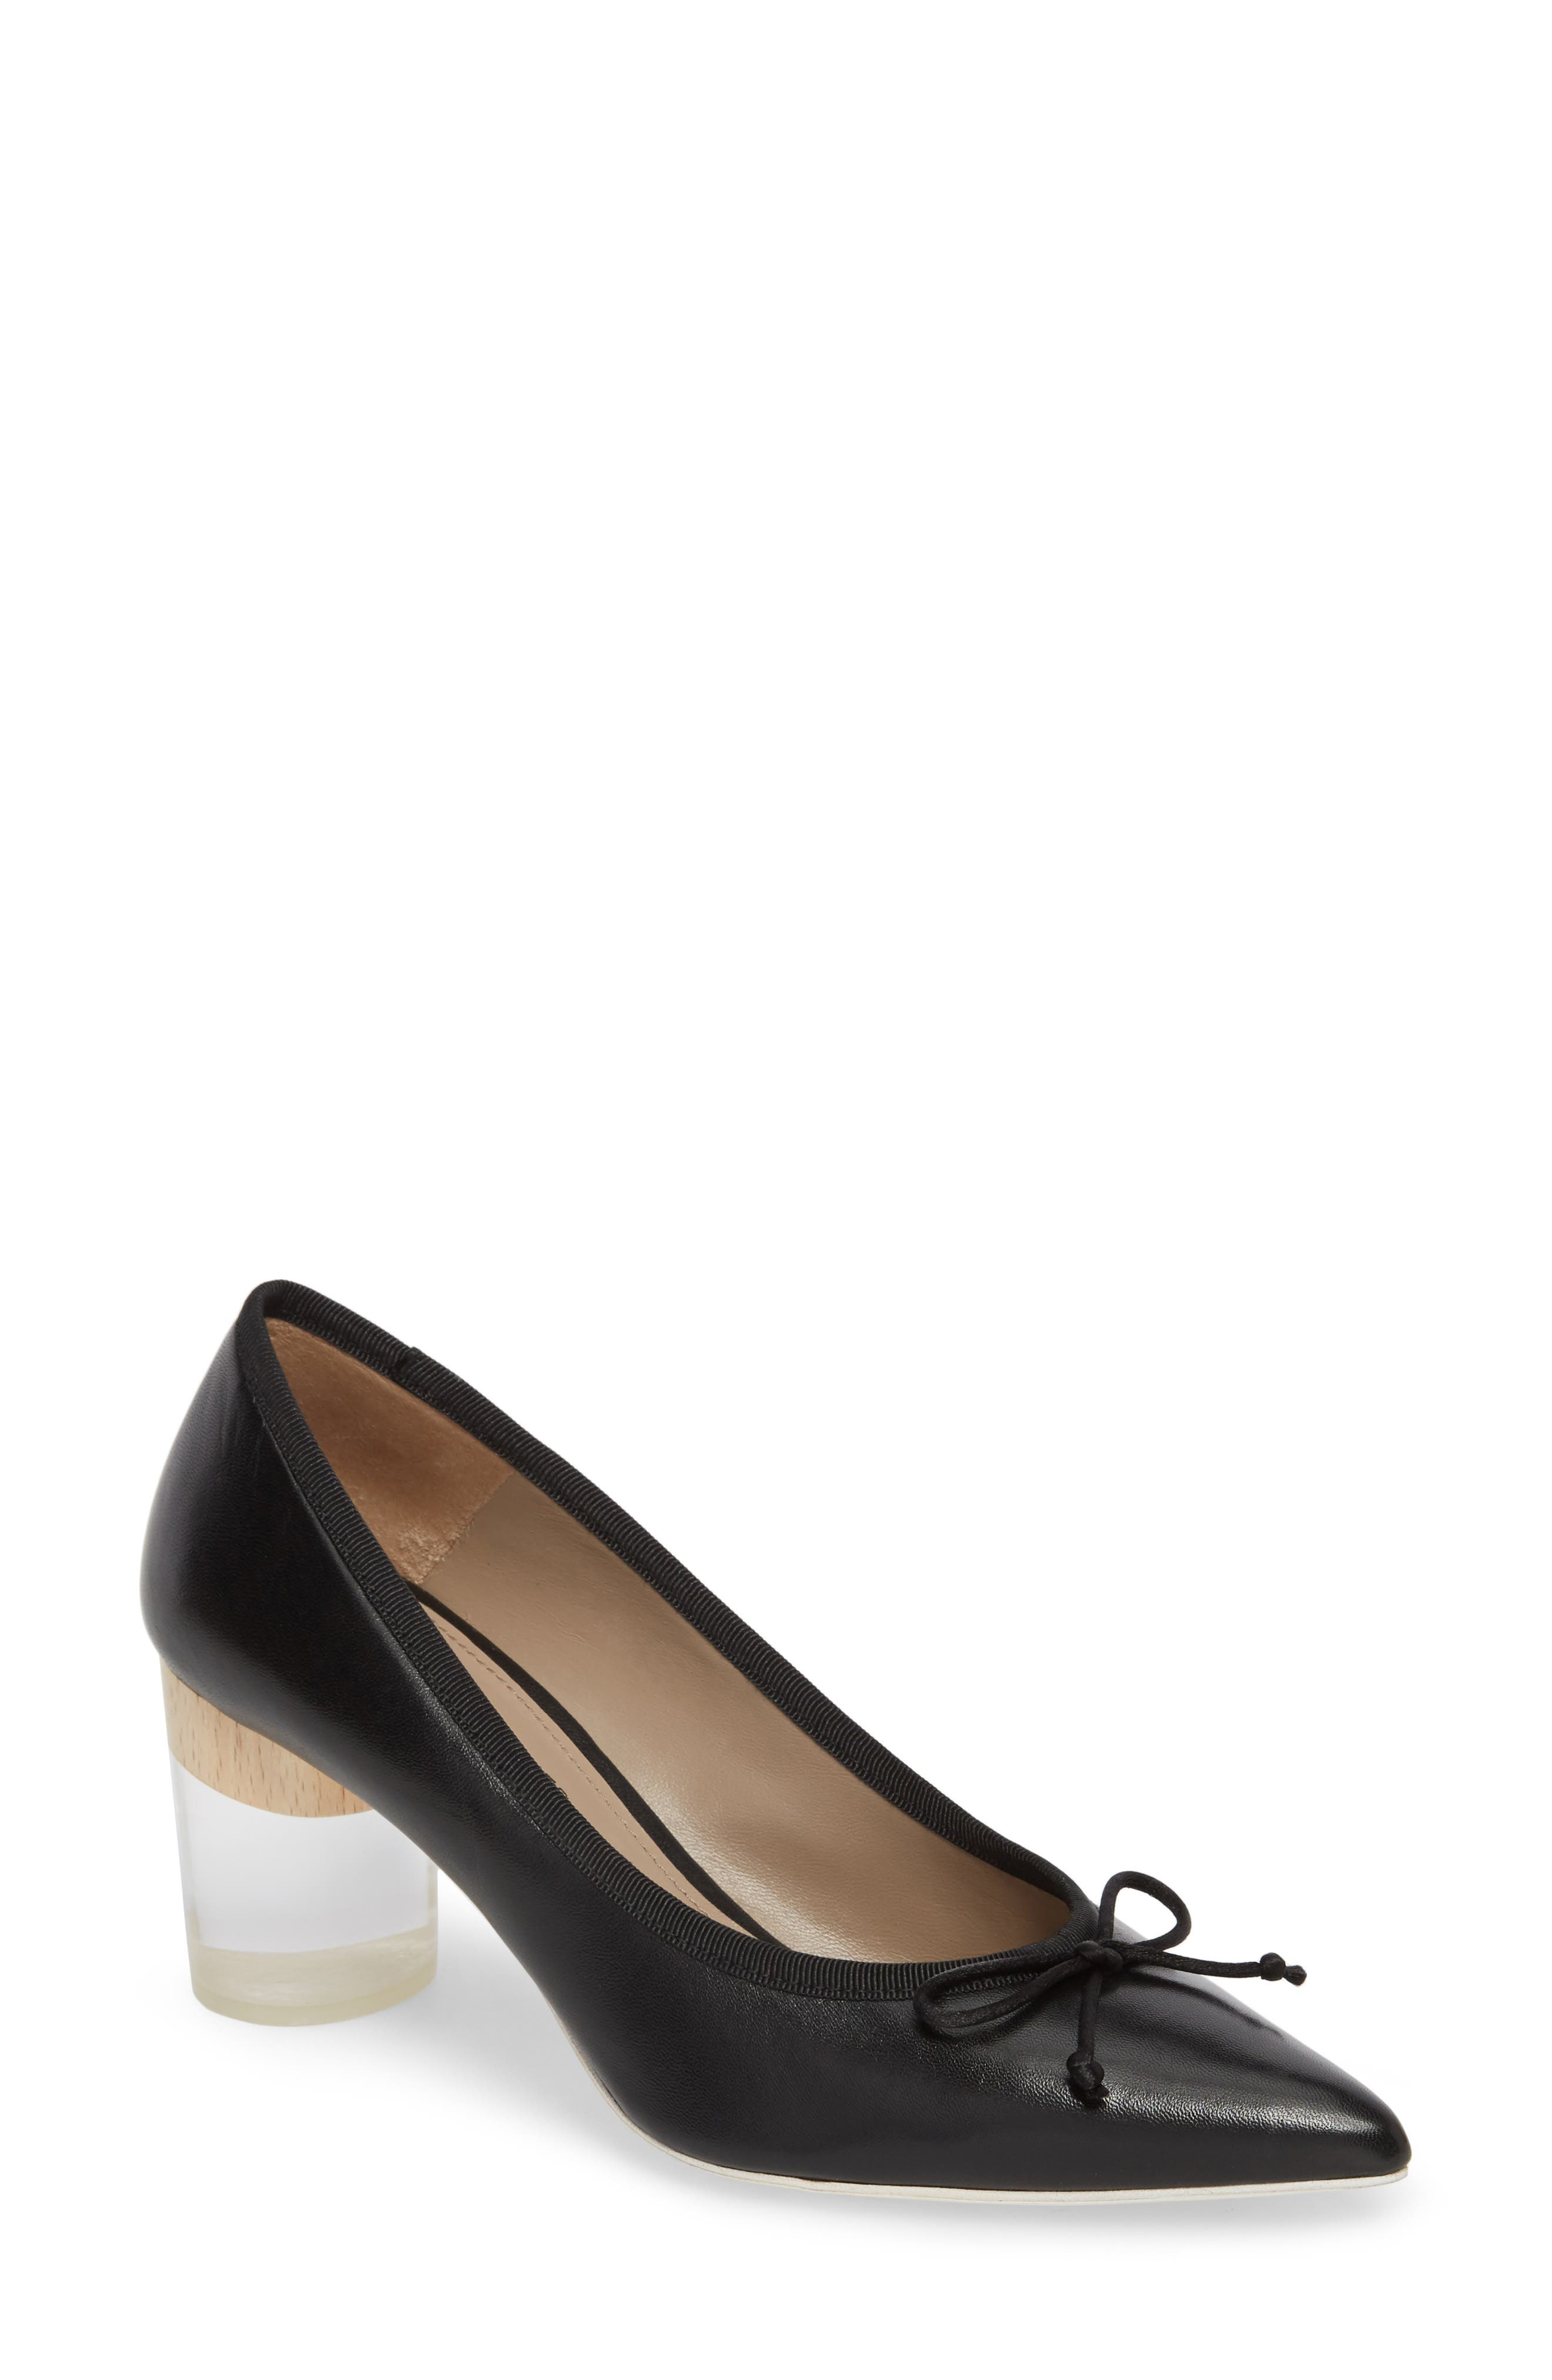 Asia Pointy Toe Pump,                         Main,                         color, Black Leather